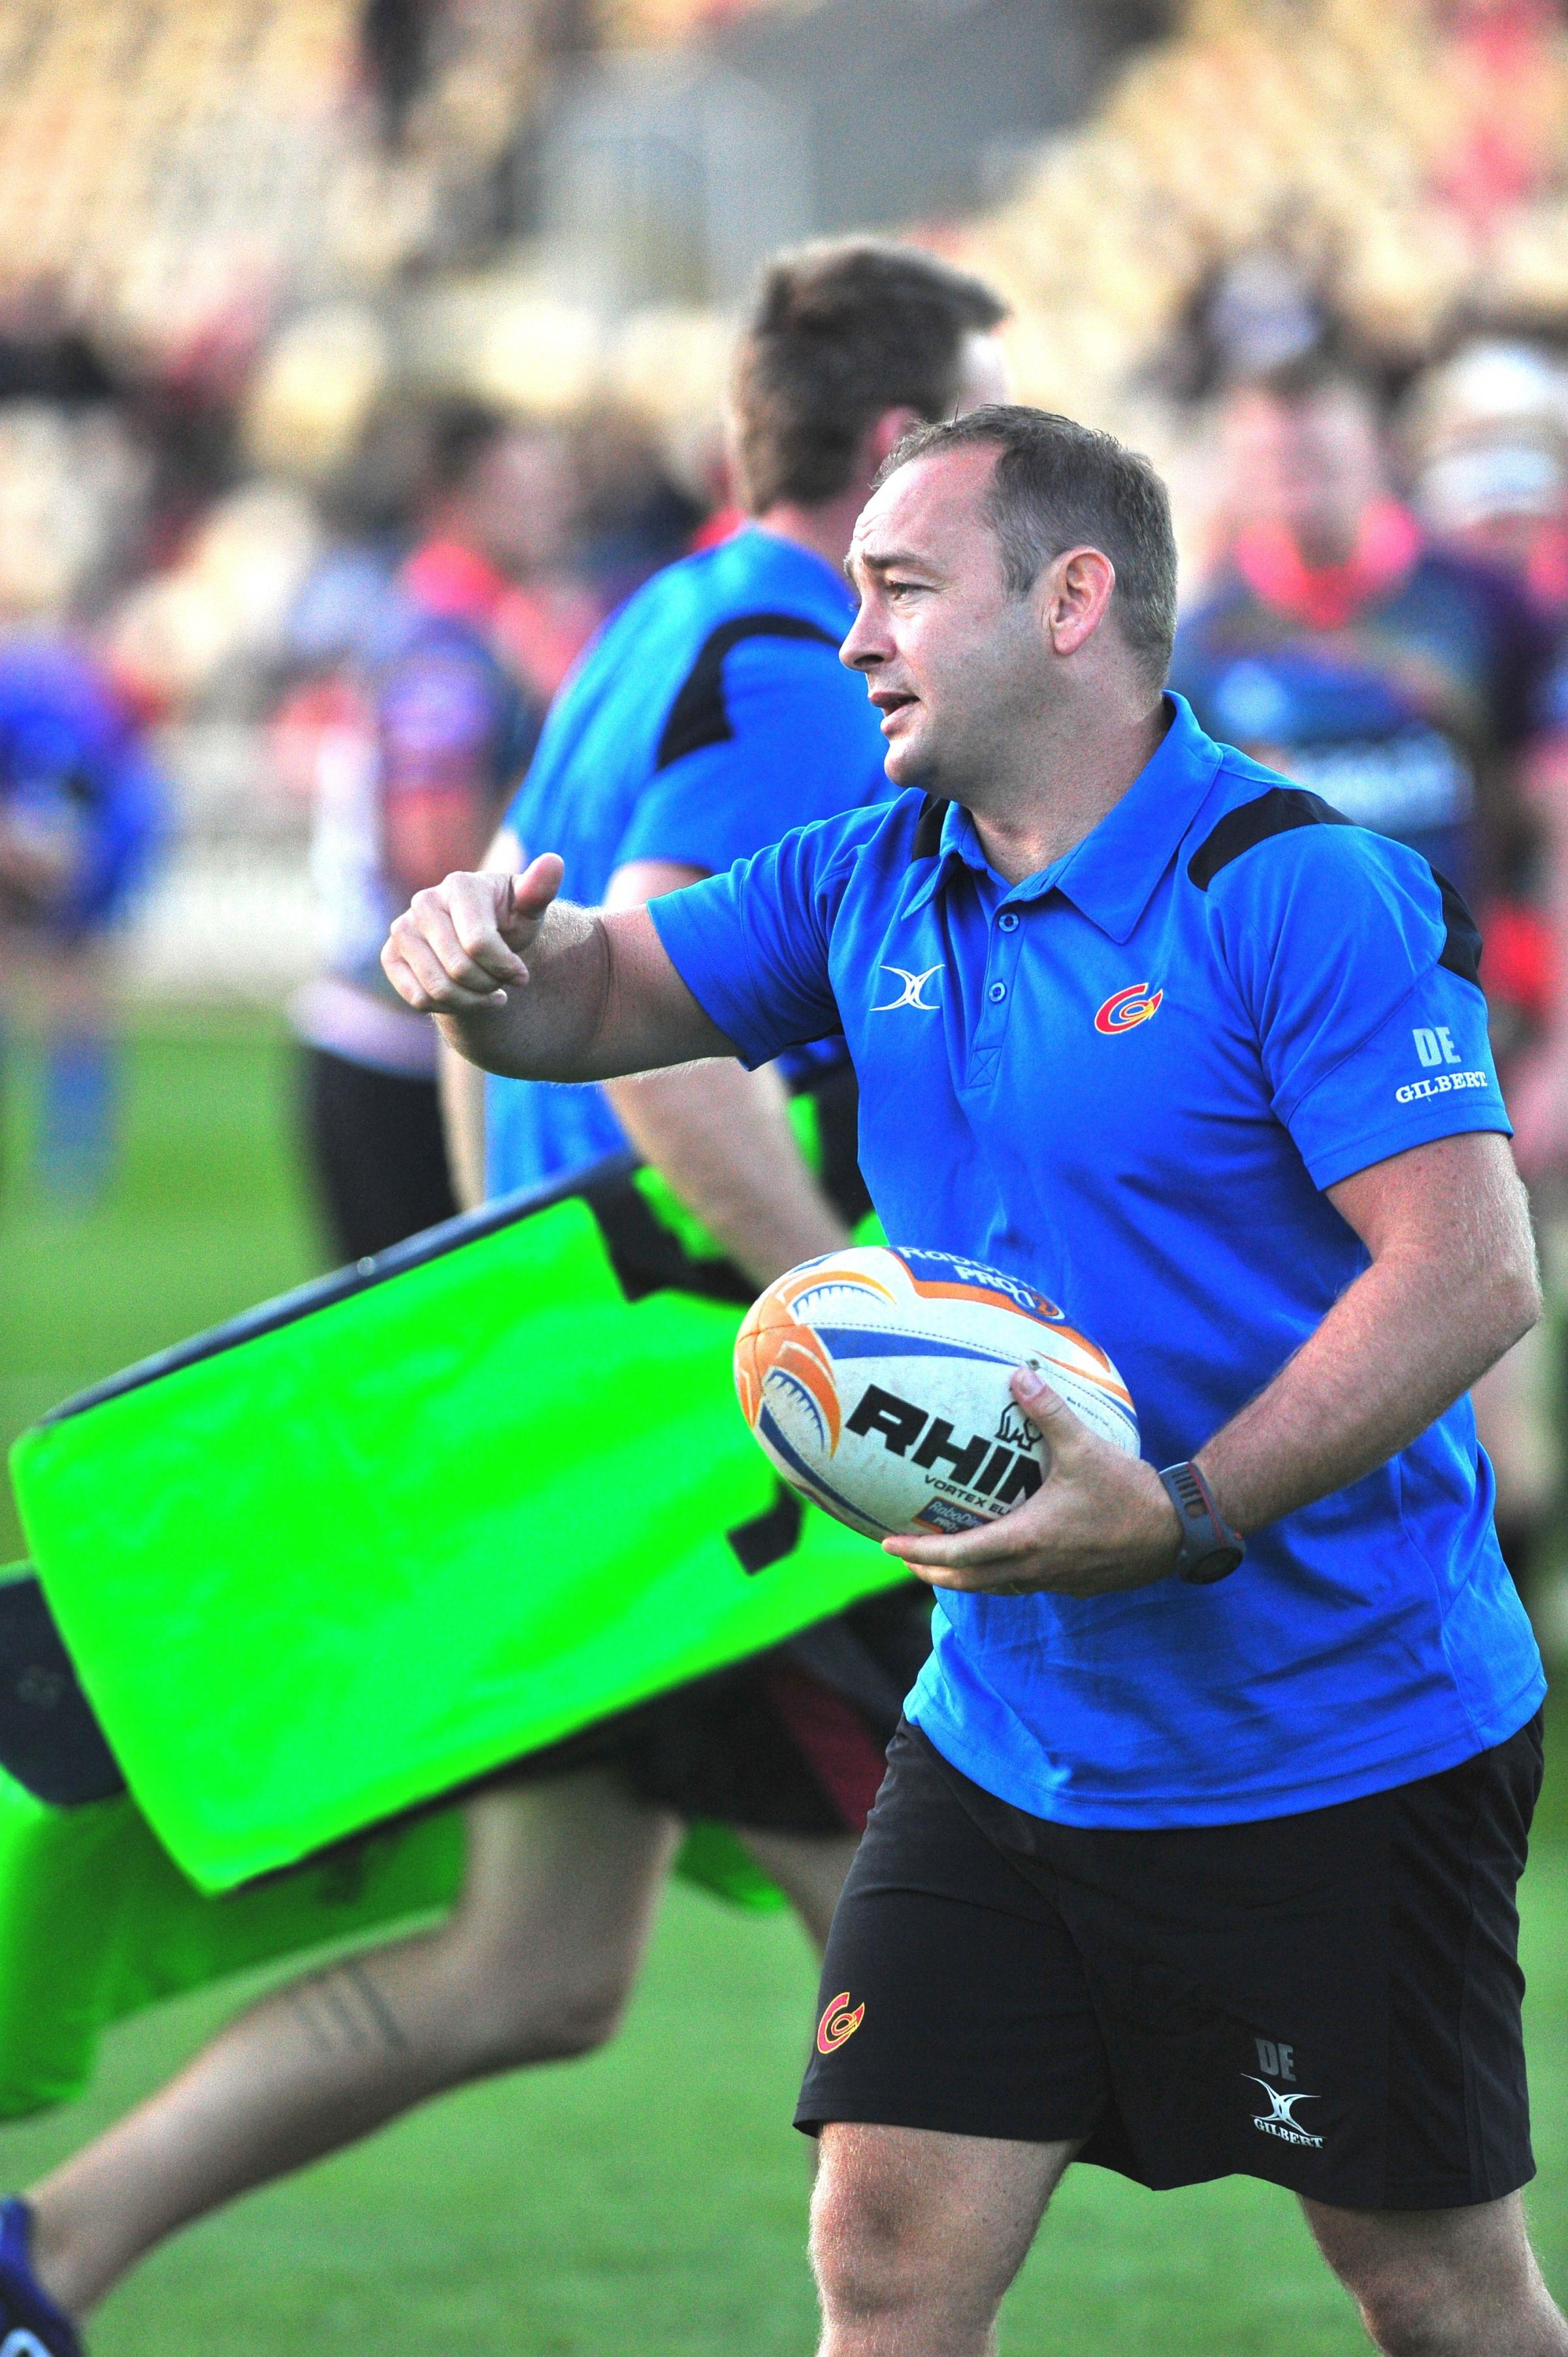 RALLYING CALL: Newport Gwent Dragons head coach Darren Edwards